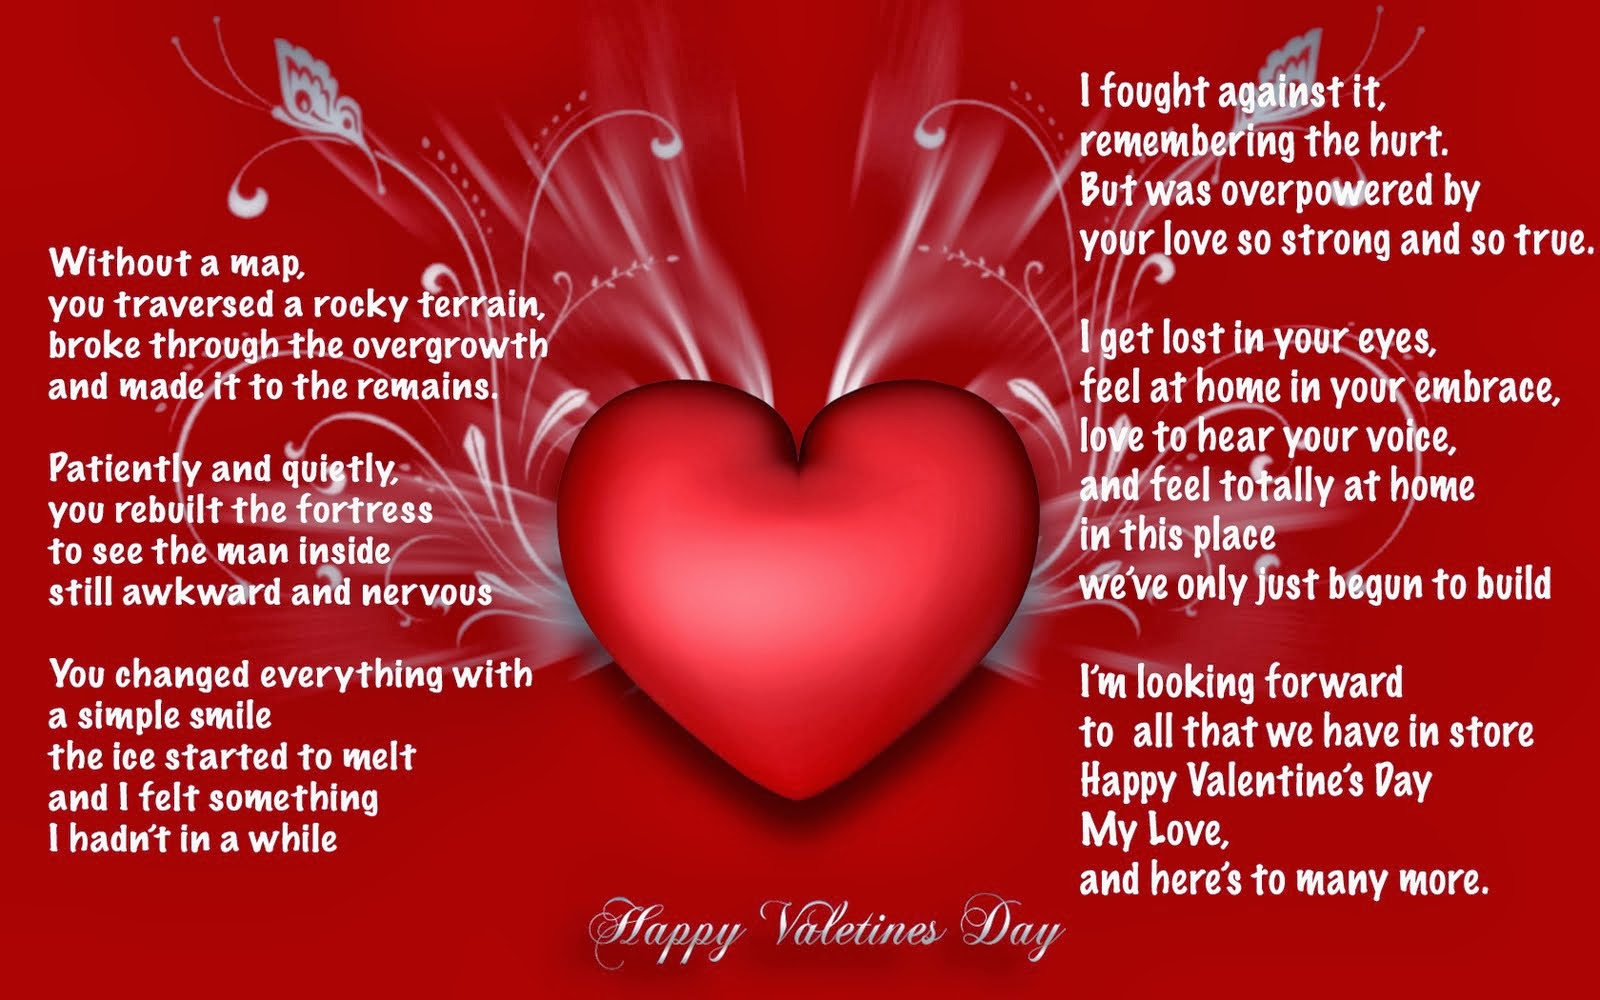 happy valentines day 2014 quotes?resize=640%2C400 happy valentines day messages greetings wishes upcomevent com,Happy Valentines Day Wife Meme